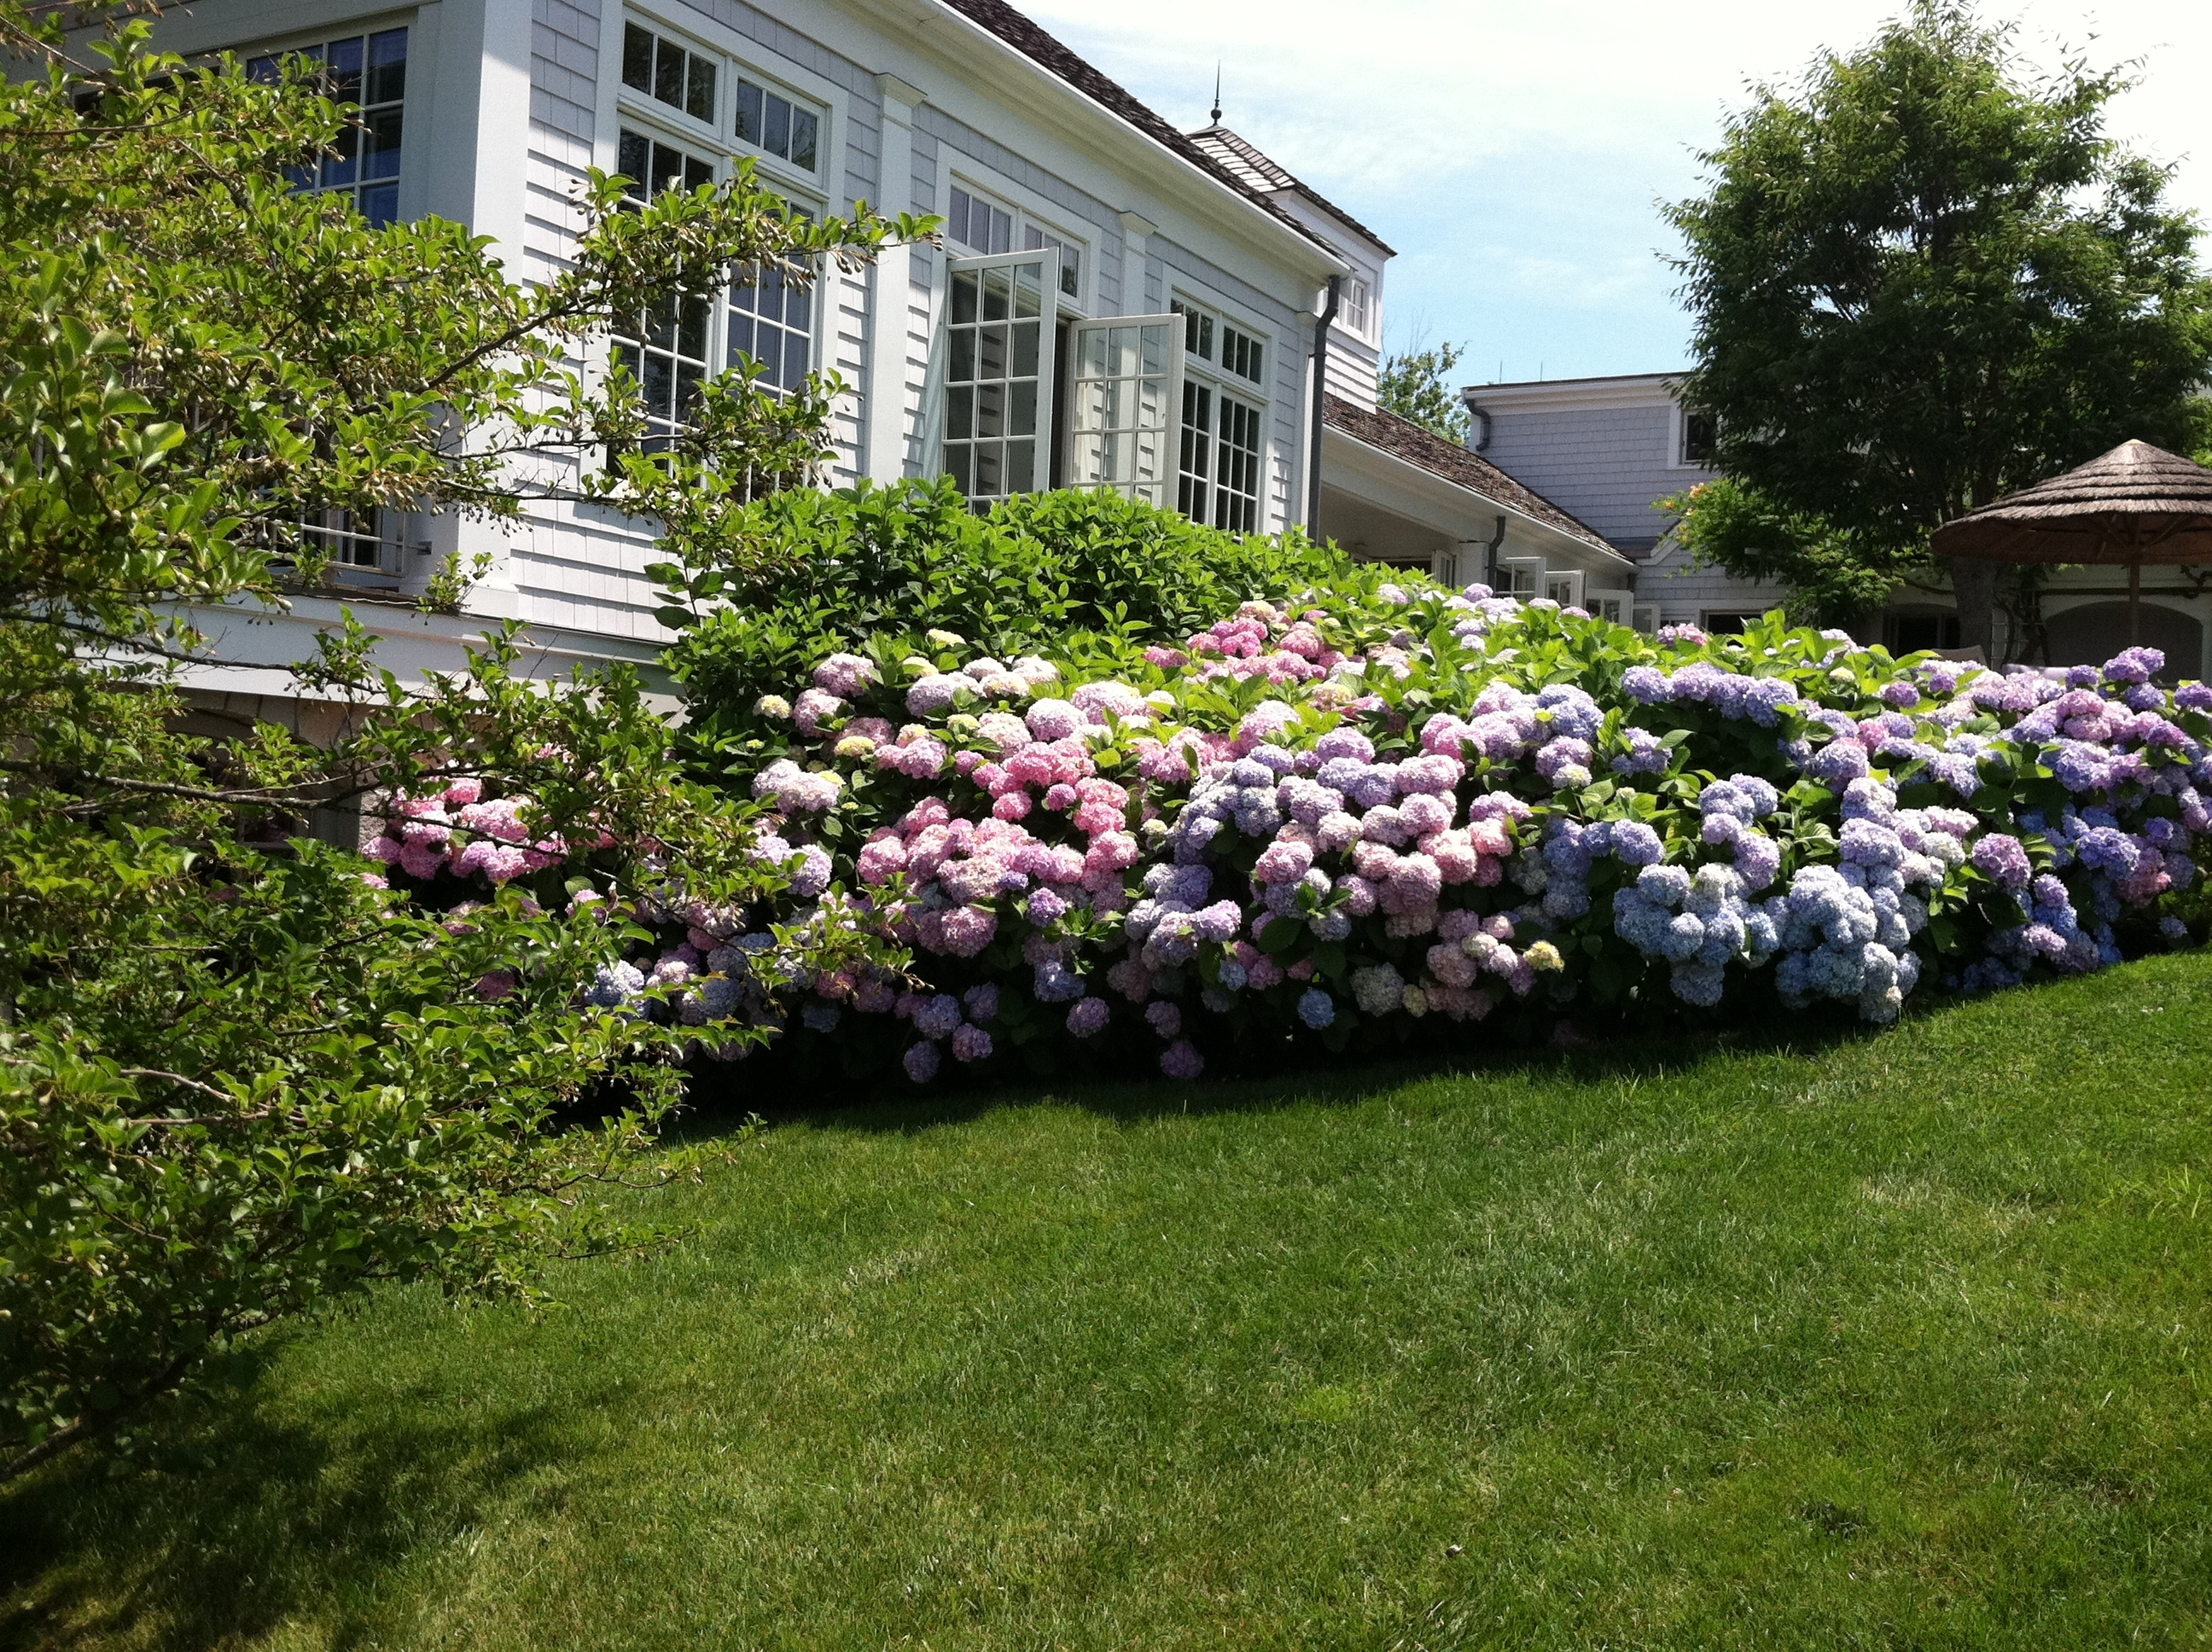 Image of: Villagegardener Living And Gardening On Cape Cod Intended For Landscaping With Hydrangeas Landscaping With Hydrangeas Ideas